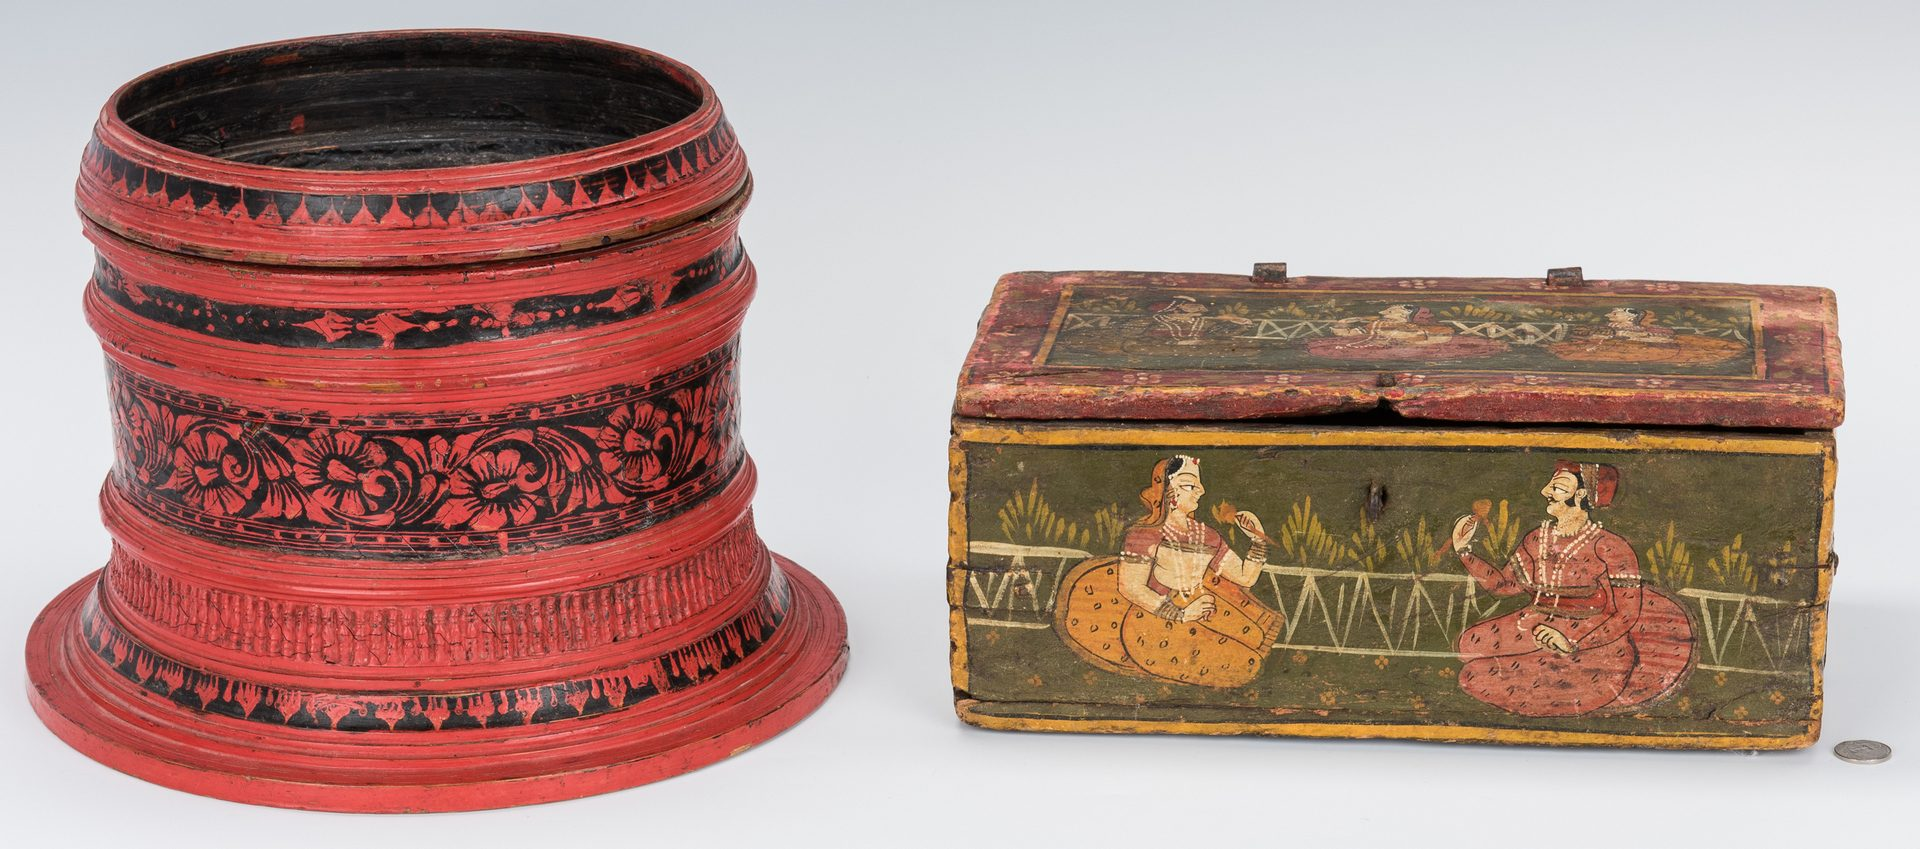 Lot 26: Indian Painted Box and Red Lacquer Basket Stand